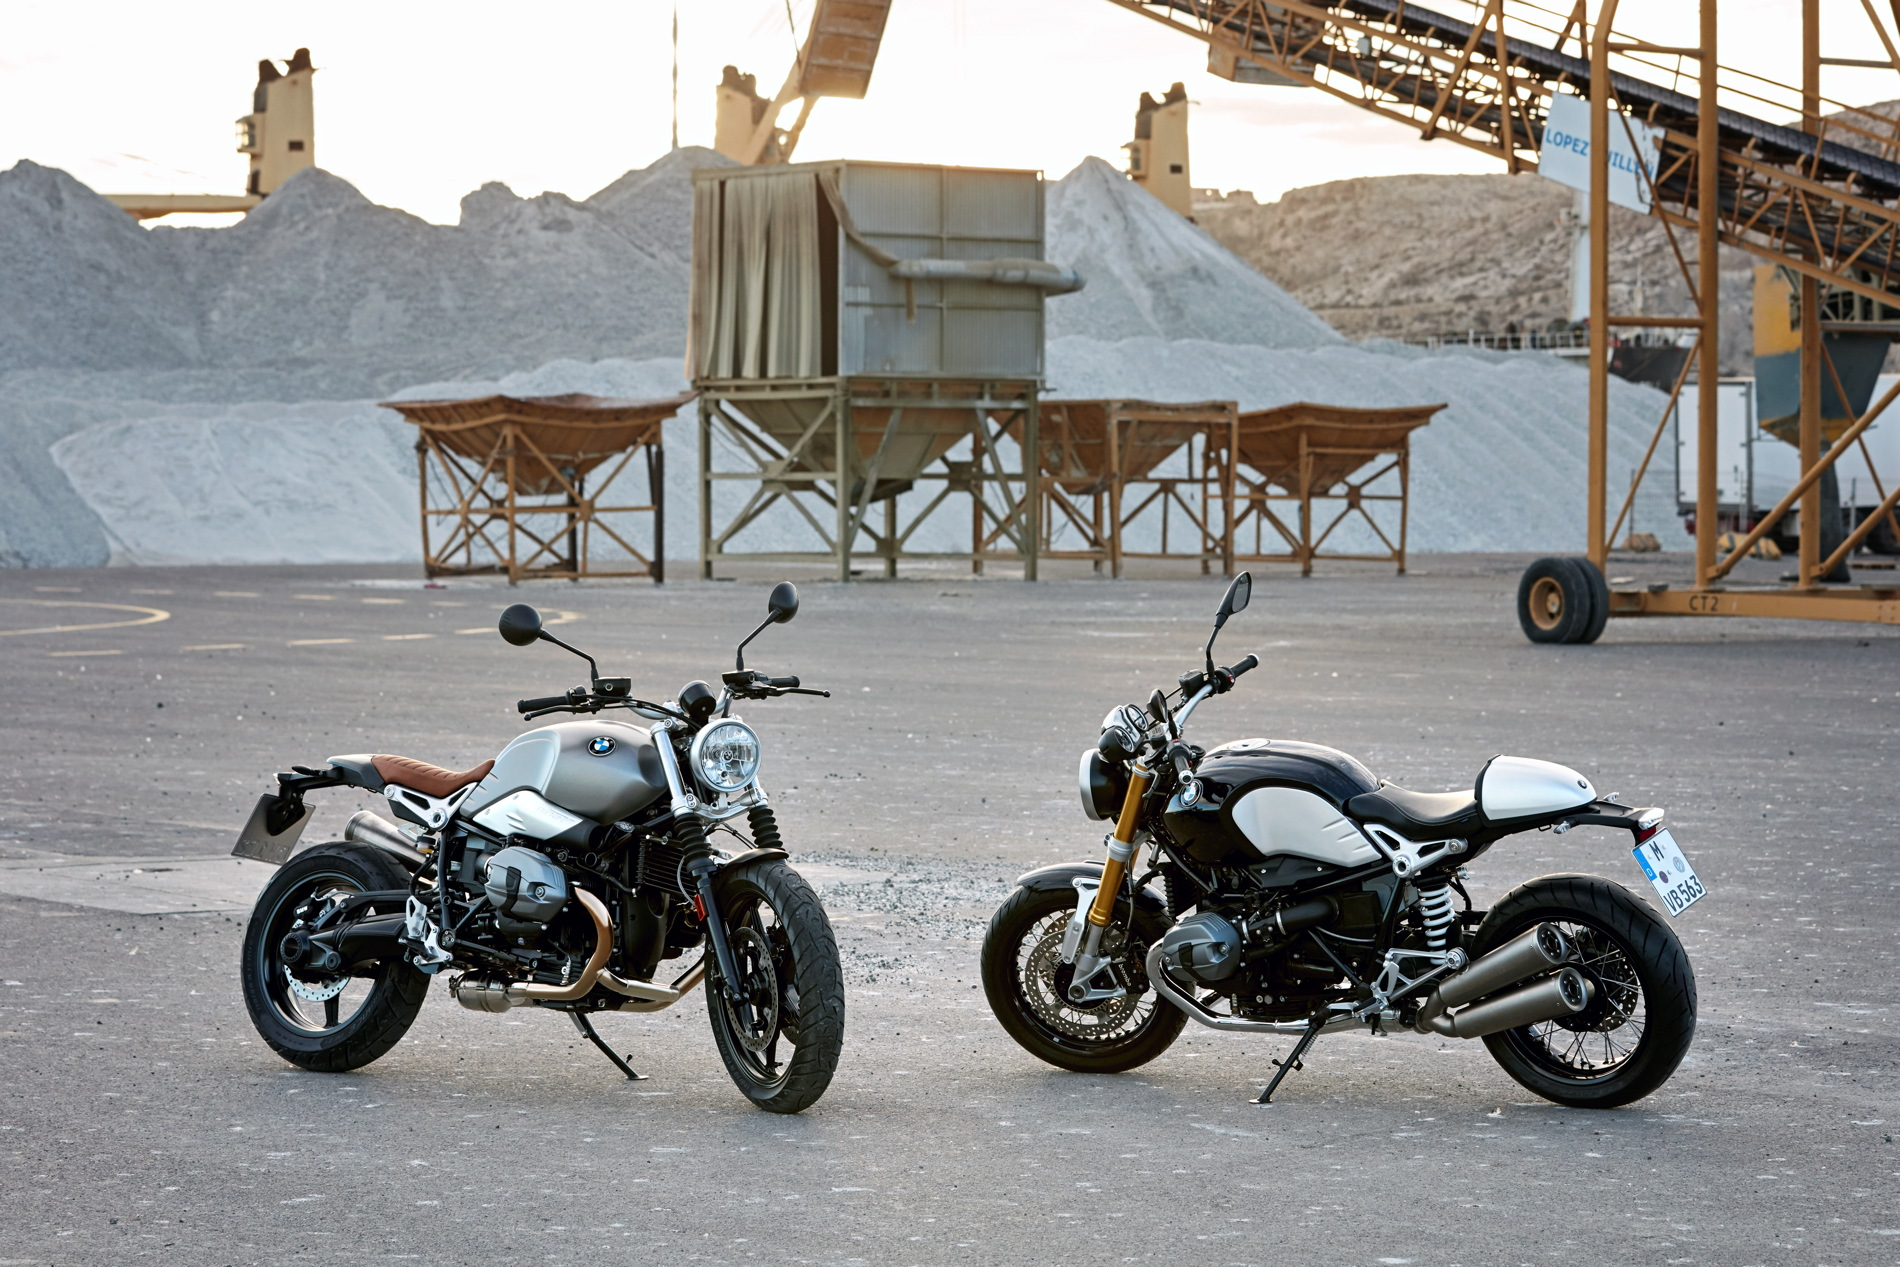 BMW R nineT Scrambler-80 and Original BMW R nineT